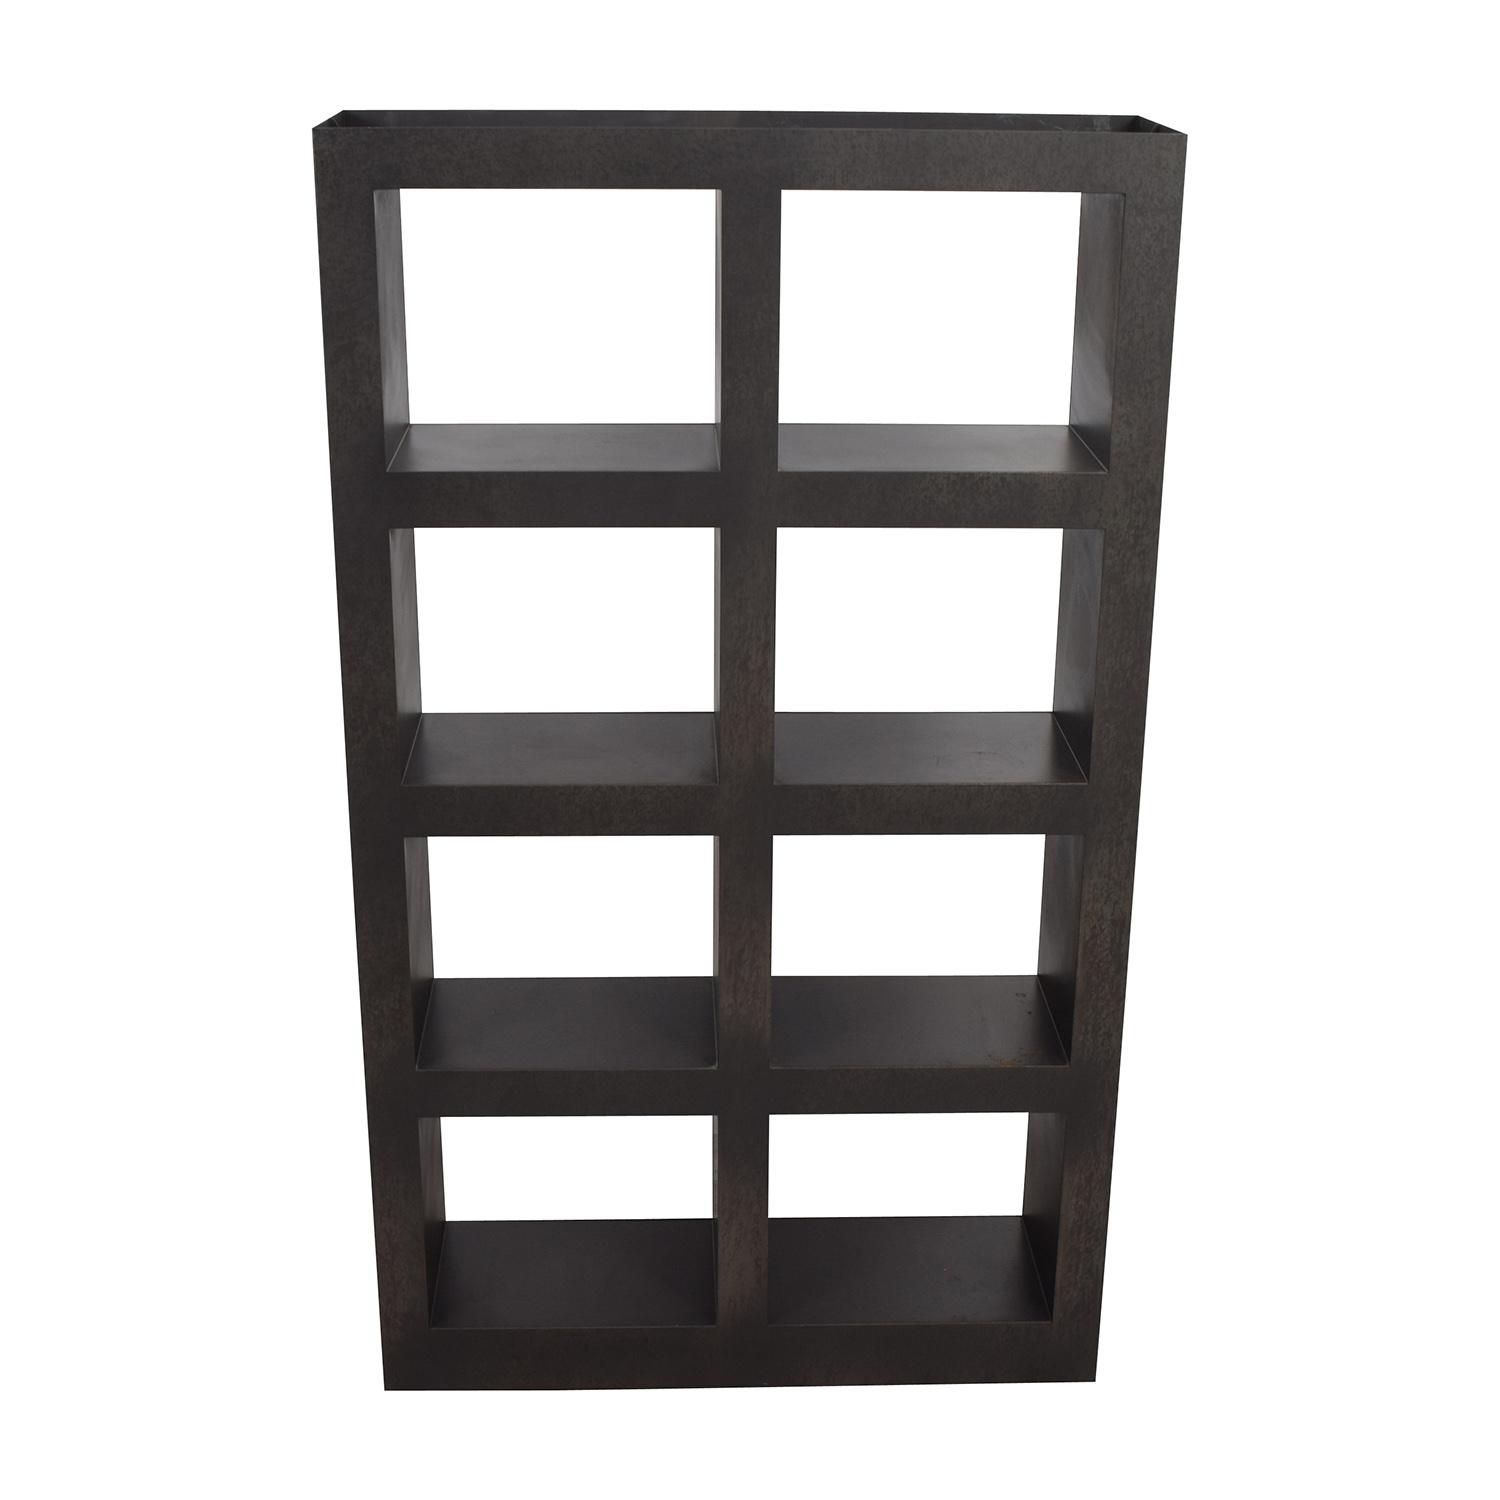 Crate & Barrel Crate & Barrel Shadow Box Tower